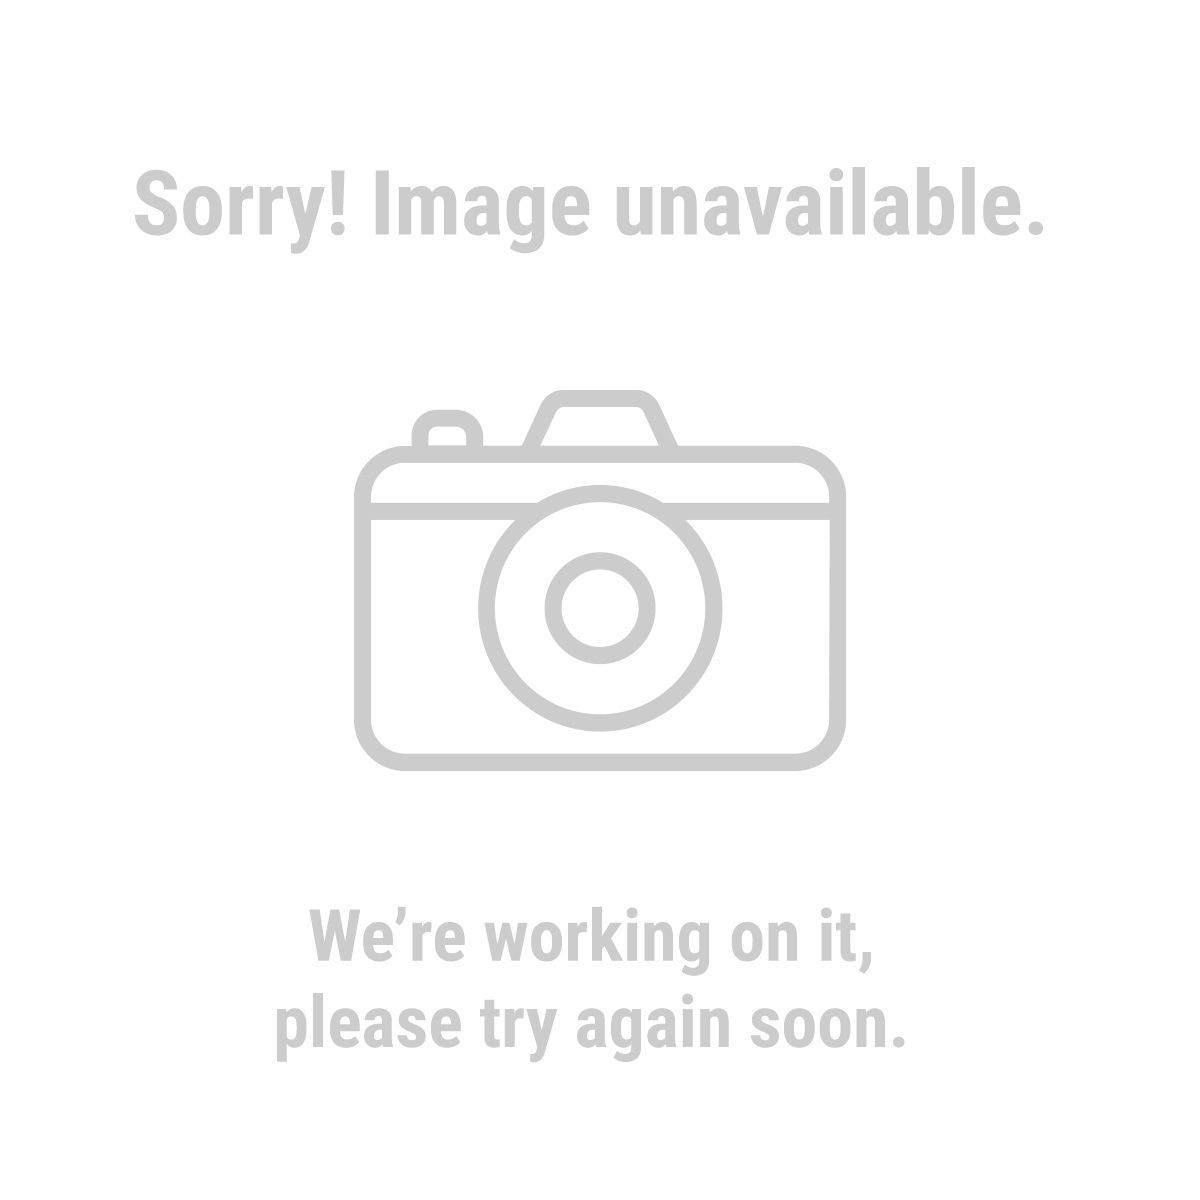 Haul-Master 66345 Clevis Trailer Pin Mount